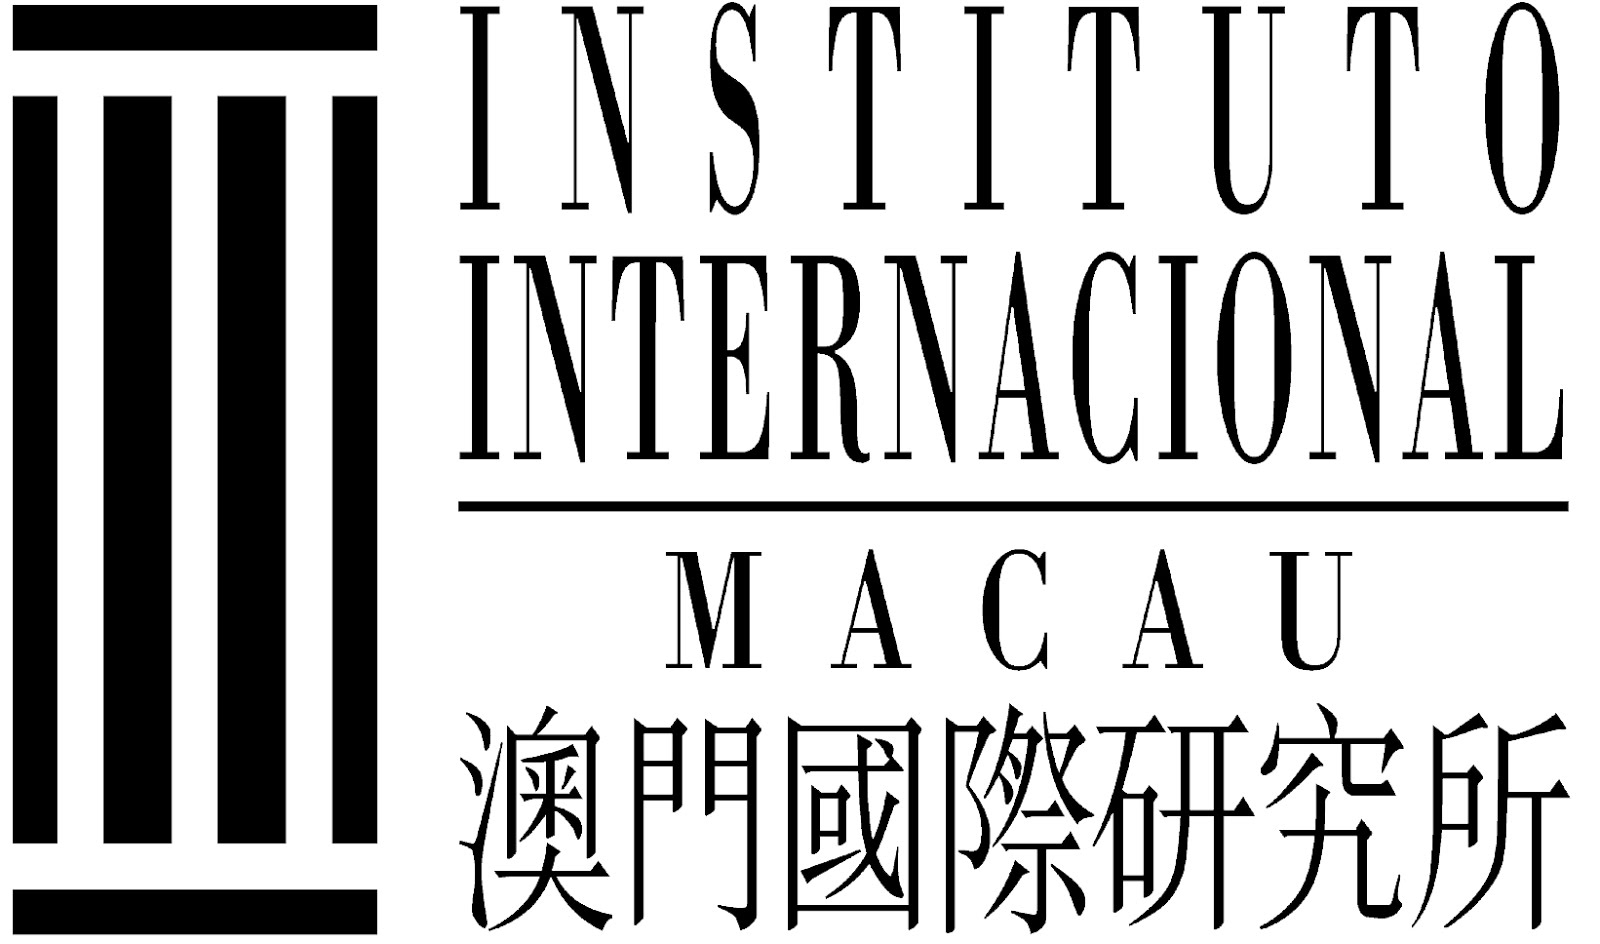 Instituto Internacional de Macau